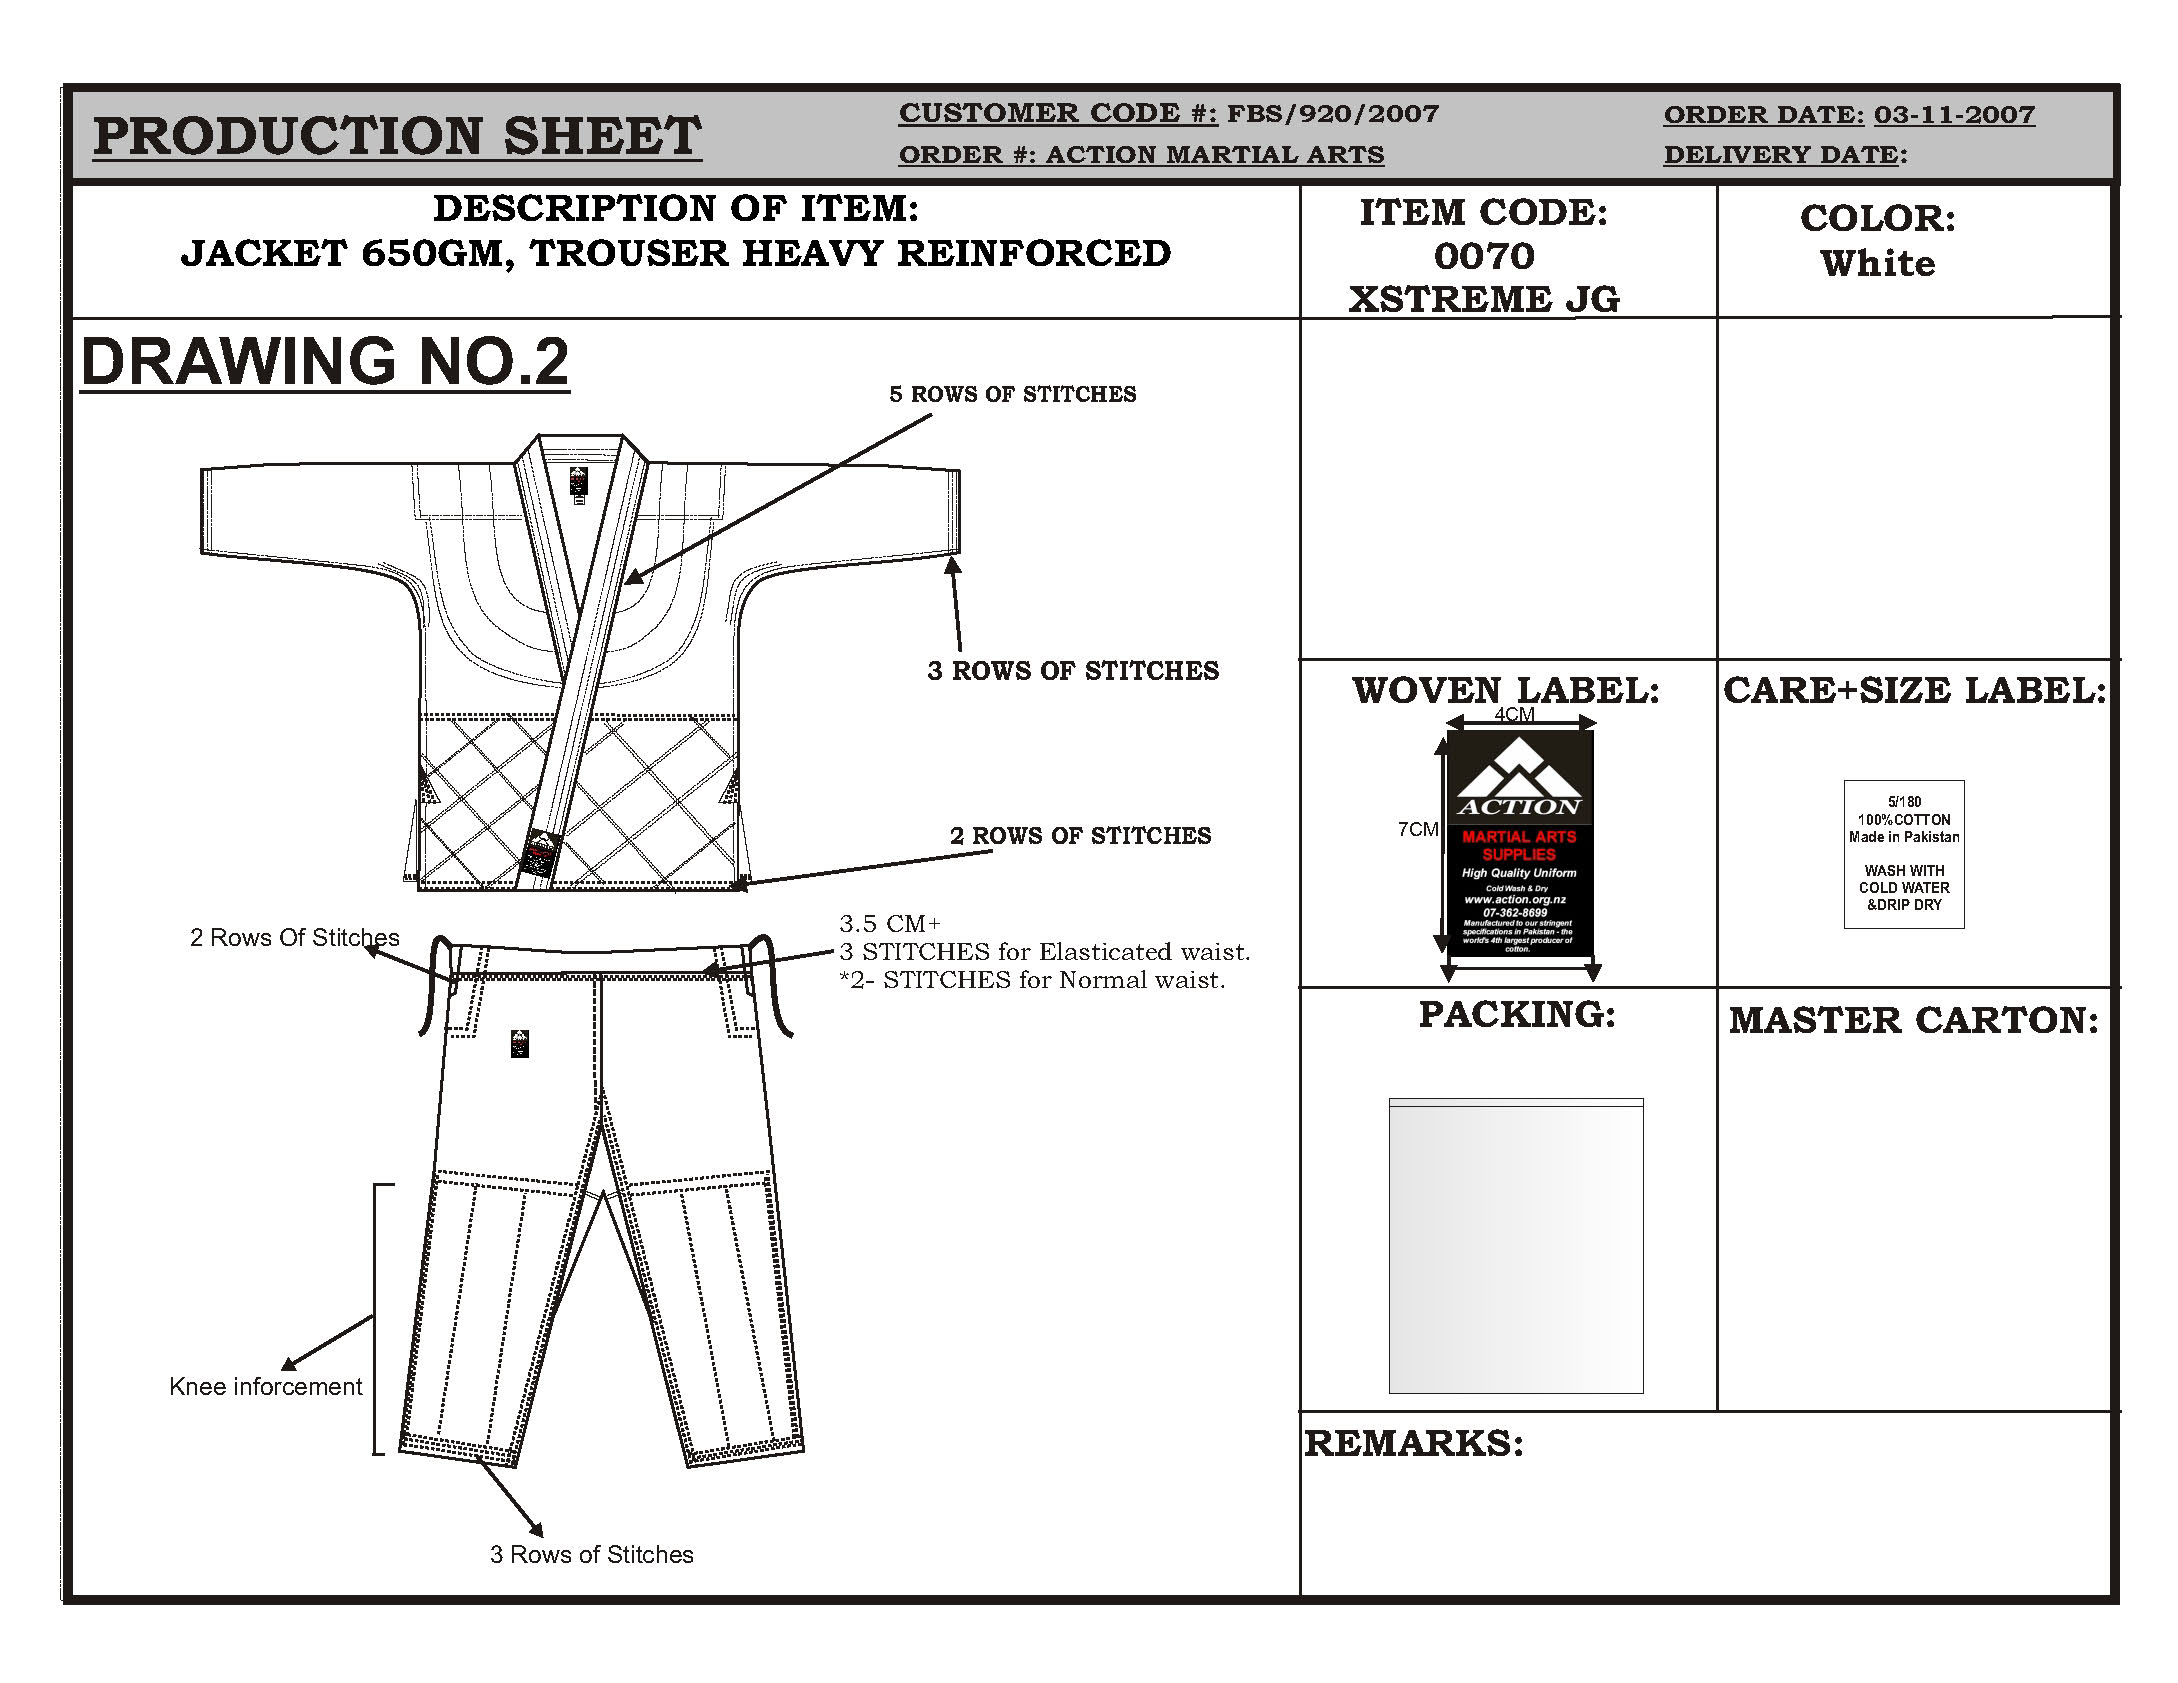 Action Uniform Product Drawings 920 07 Page 02